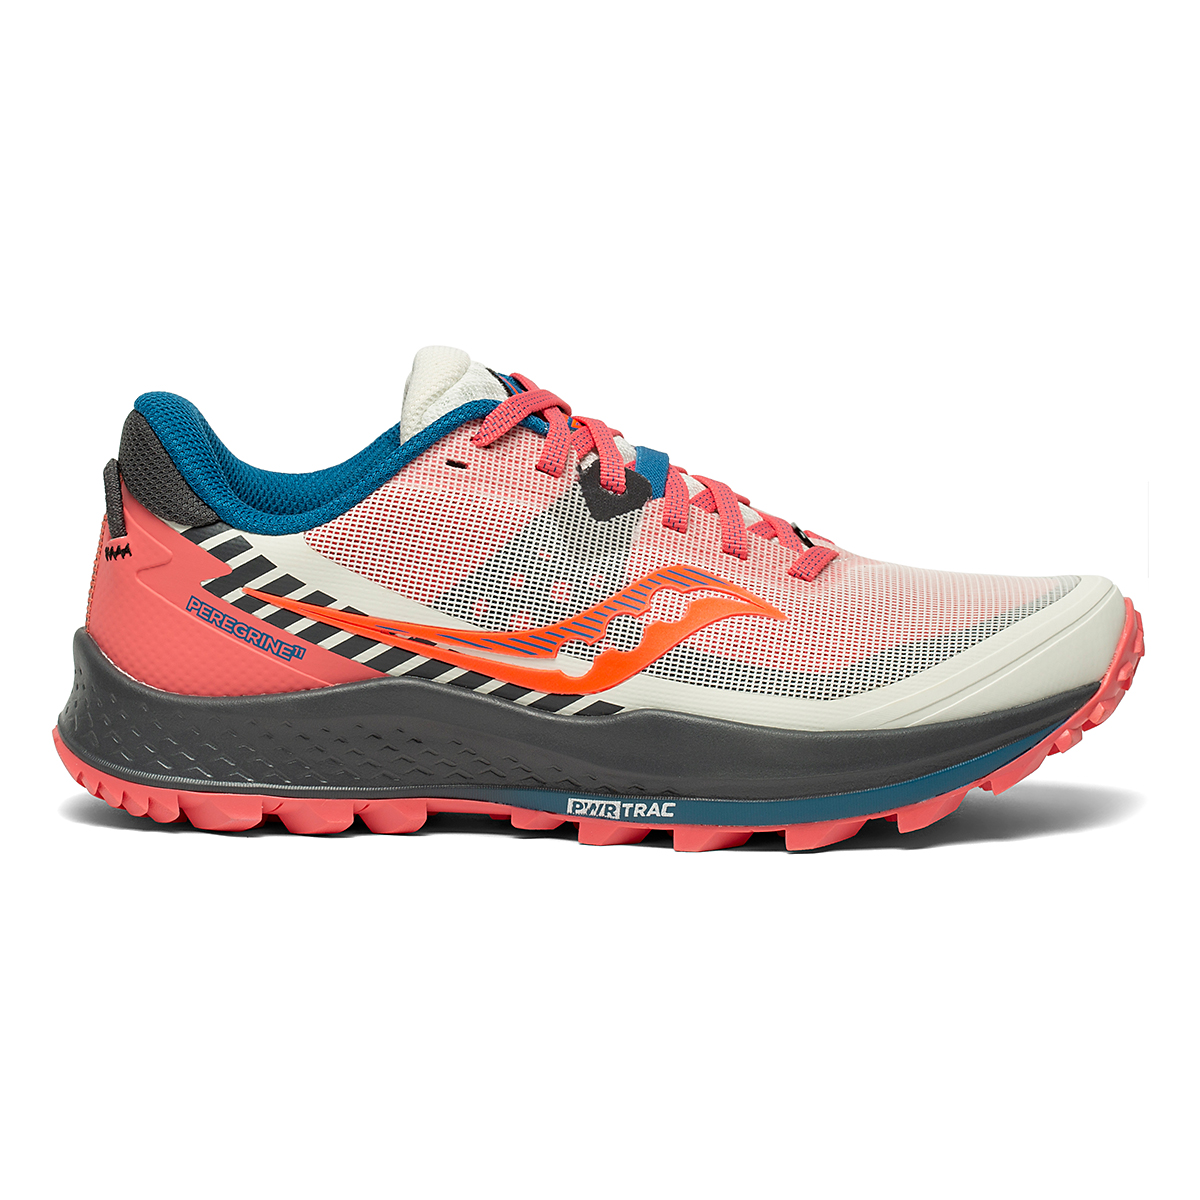 Women's Saucony Peregrine 11 Trail Running Shoe, , large, image 1